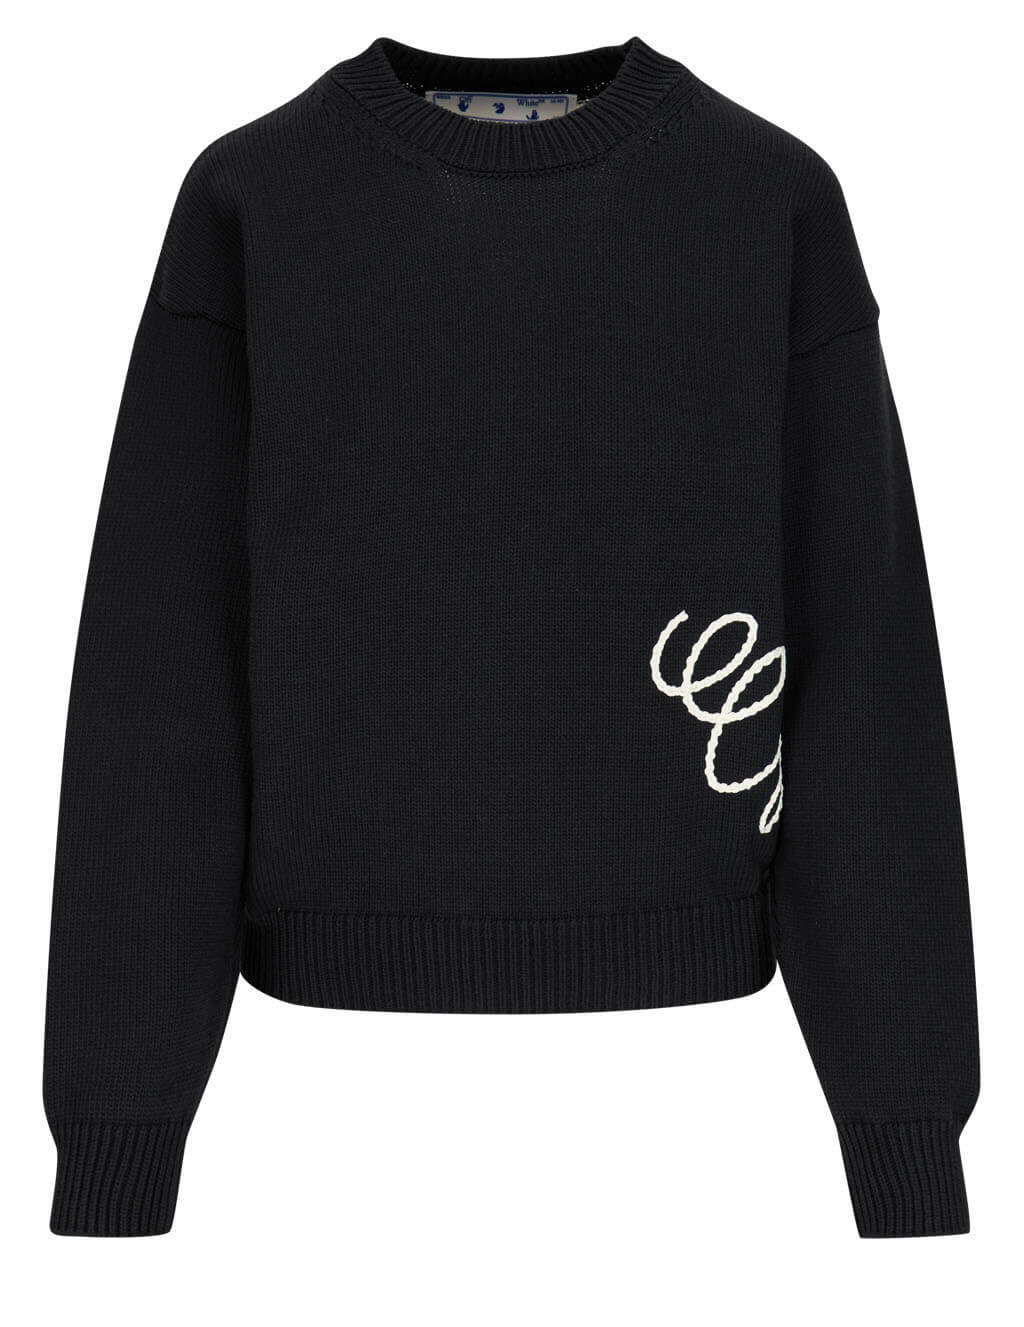 Women's Off-White Two-Tone Embroidered Jumper in Black/Beige - OWHE036R21KNI0011061